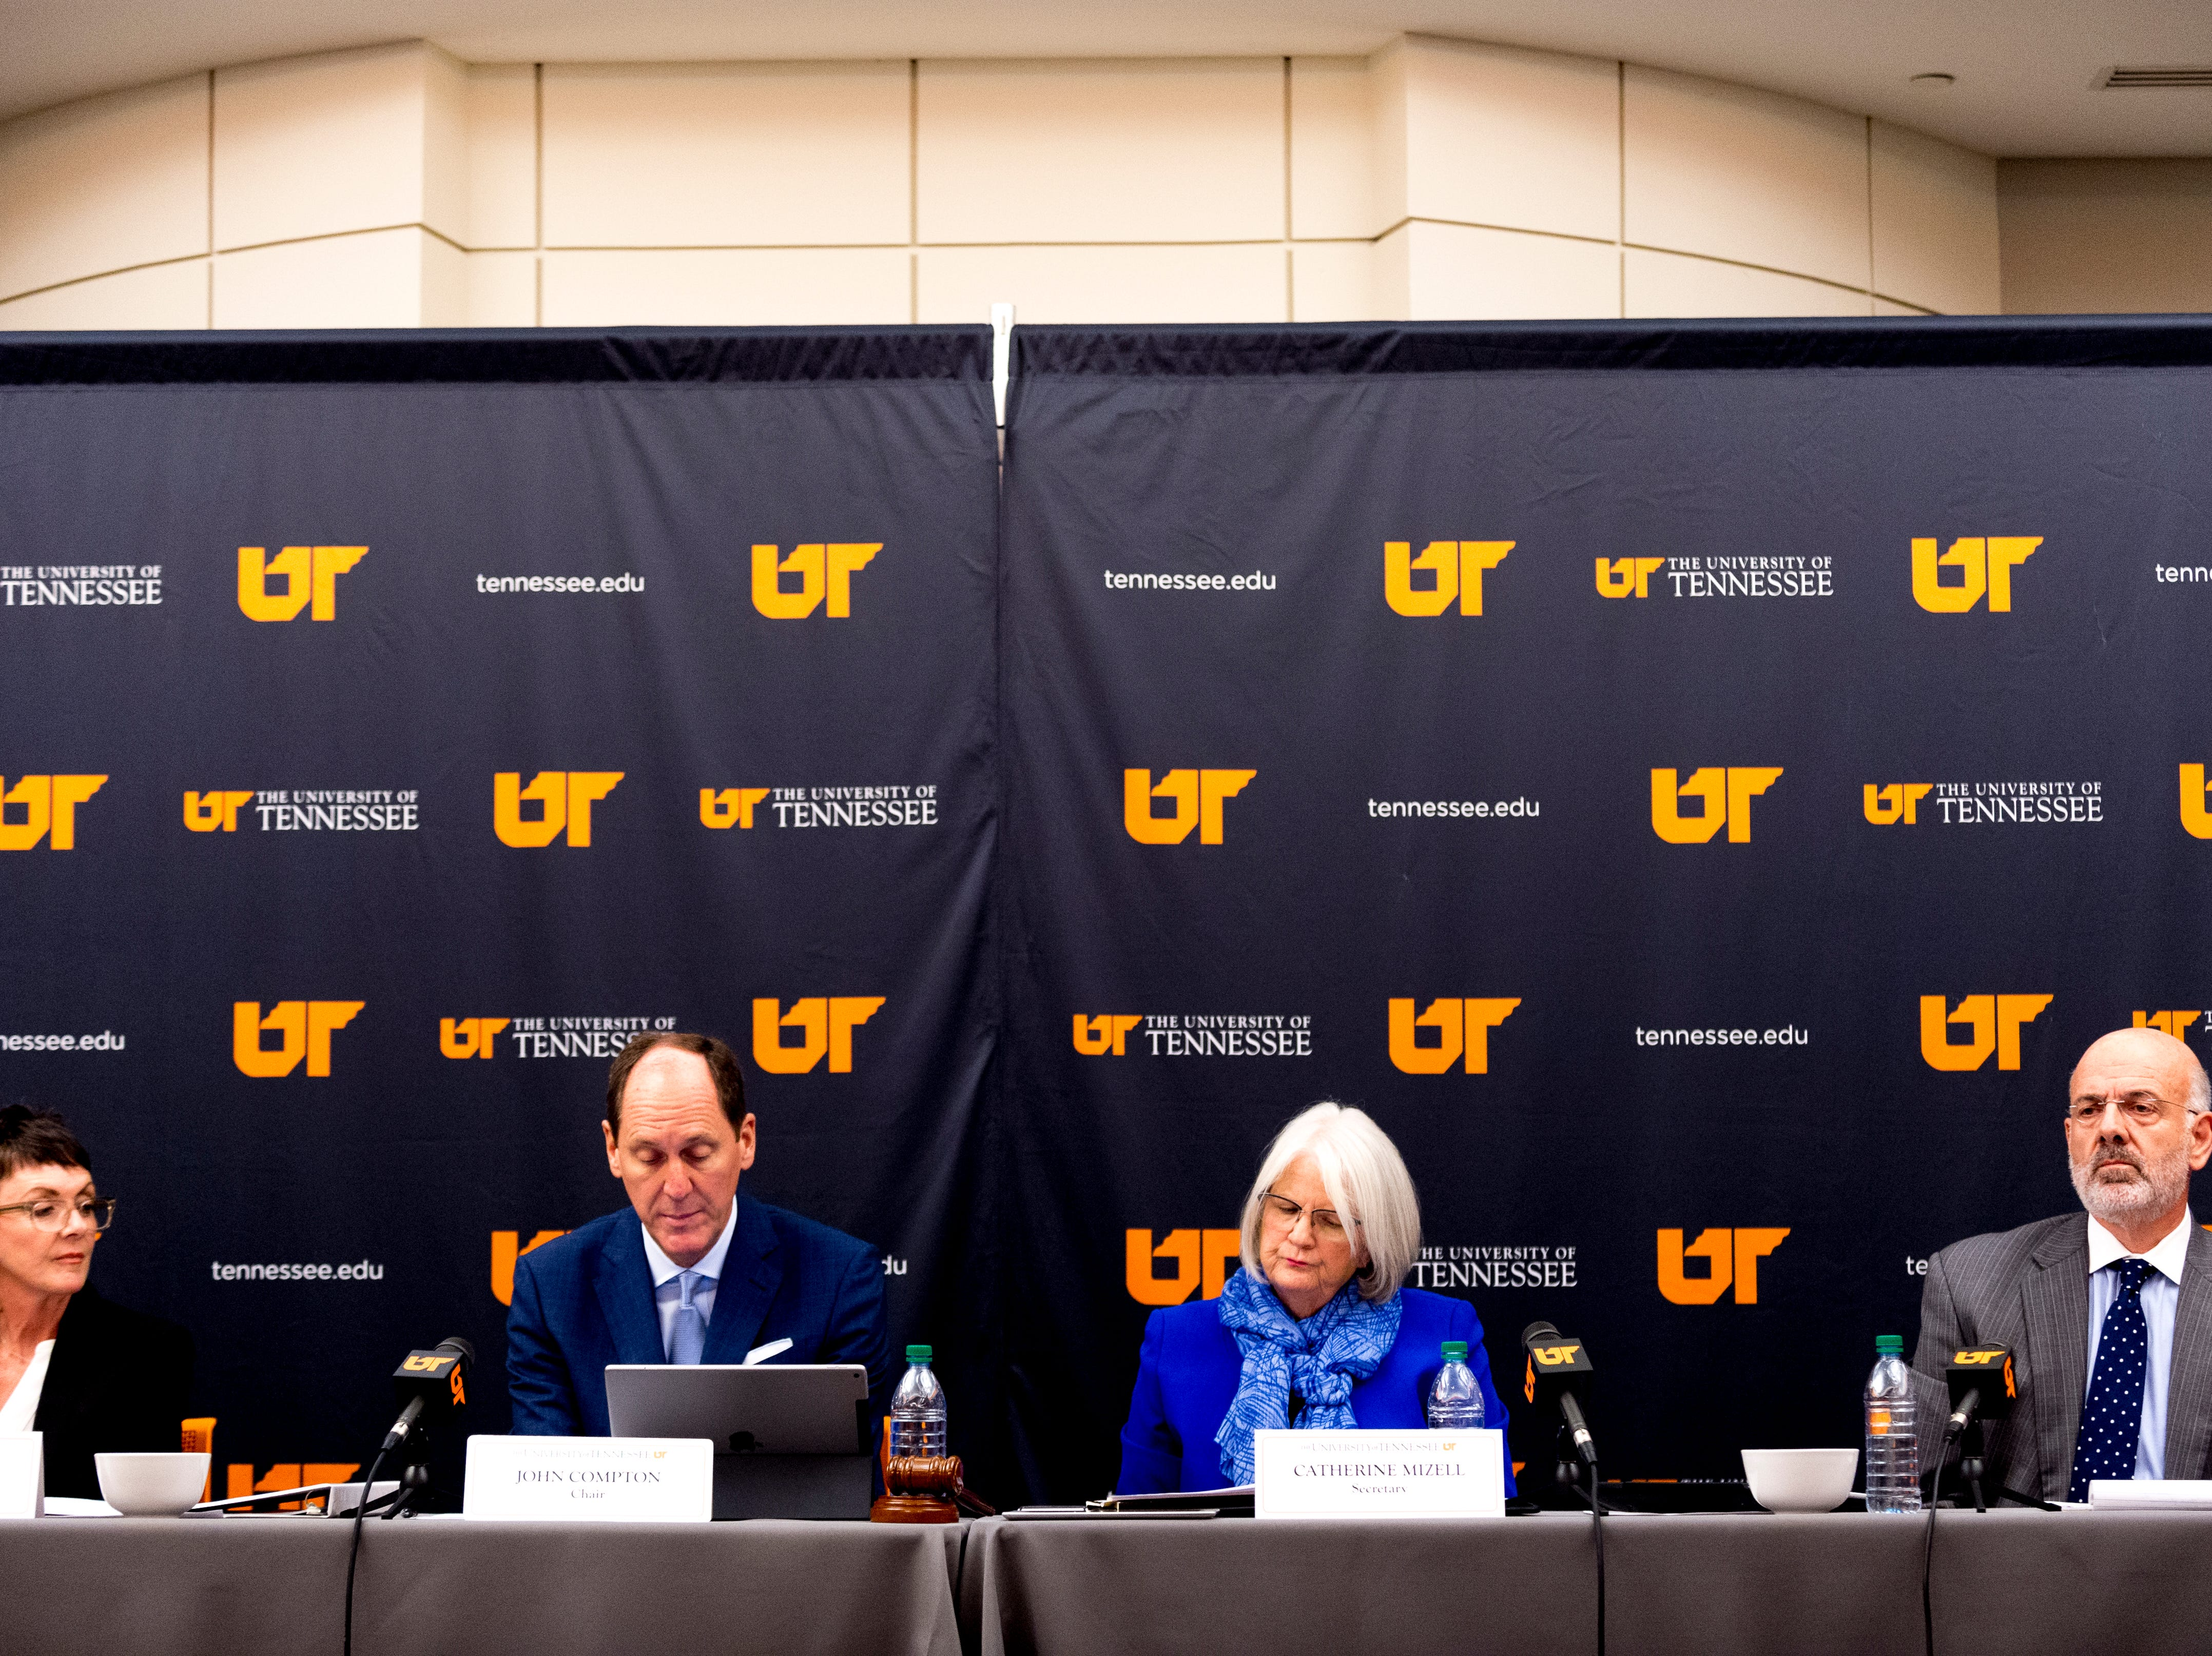 From left, trustee Kim White, Chairman John Compton, Secretary Catherine Mizell and President Joe DiPietro during a University of Tennessee Board of Trustees meeting at the UTK Visitor's Center in Knoxville, Tennessee on Tuesday, September 25, 2018. The board met to discuss several topics including the installment of an interim president.